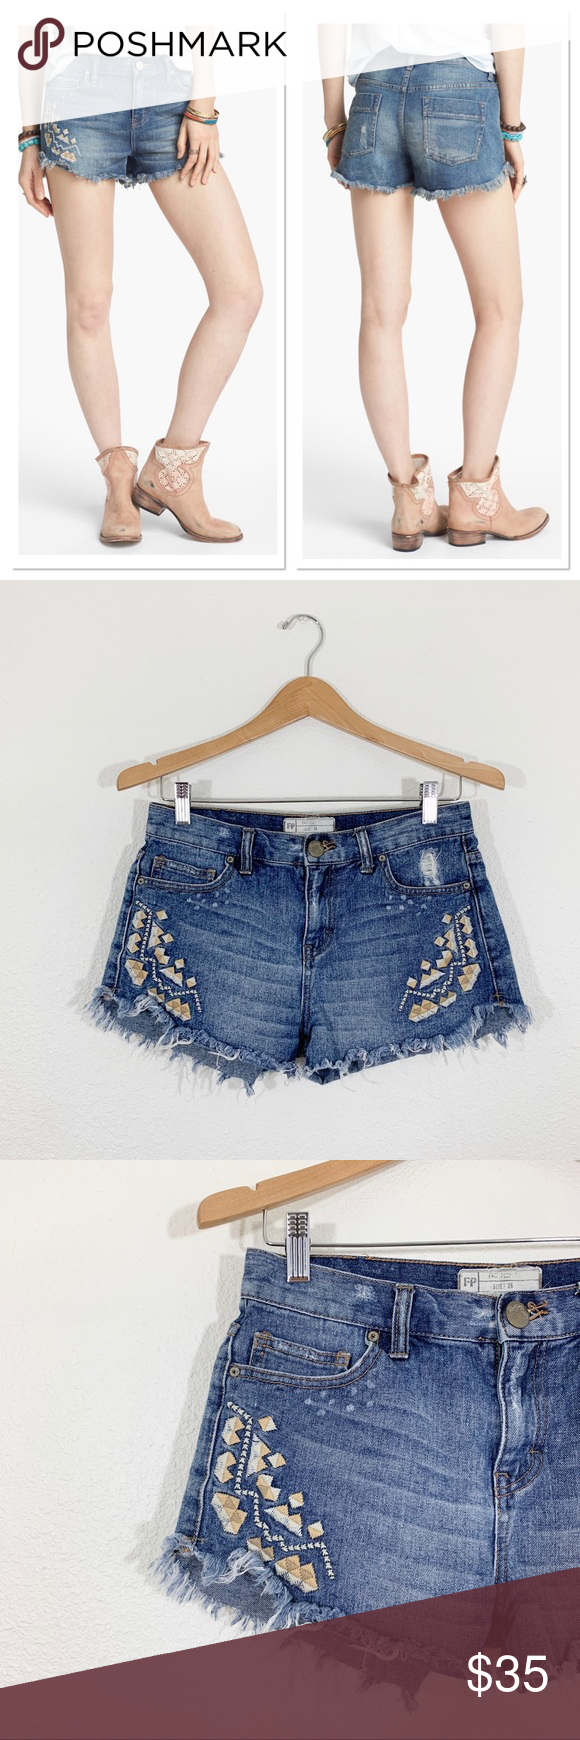 Free People Tulum Vintage Denim Cutoff Shorts Free People Tulum Vintage Denim Cutoff Shorts, Sz 26, in good used condition   Triangle embroidery  Five pocket style Minor distressing Free People Shorts Jean Shorts #denimcutoffshorts